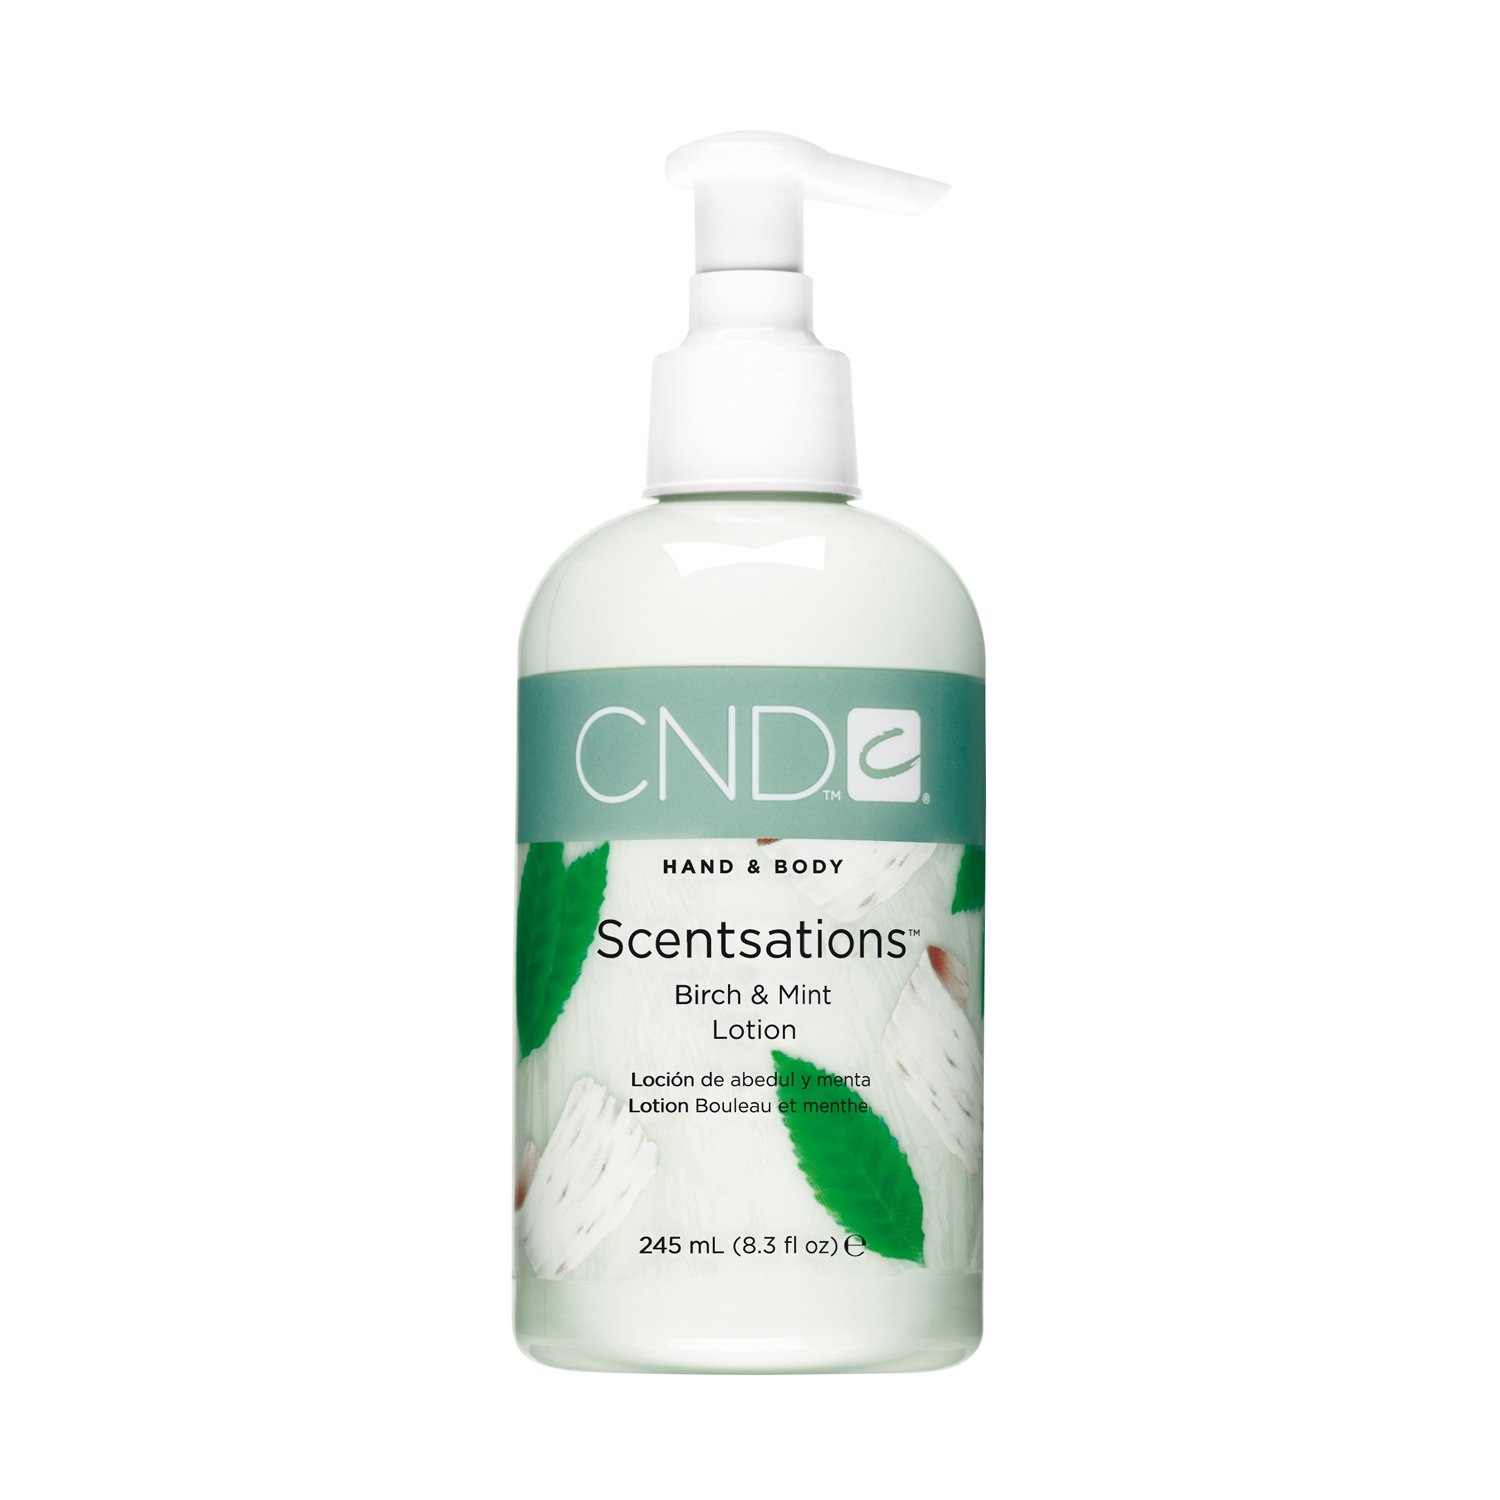 CND Scentsations Birch and Mint Hand and Body Lotion - 8.3 oz CREATIVE NAIL DESIGN INC 511305